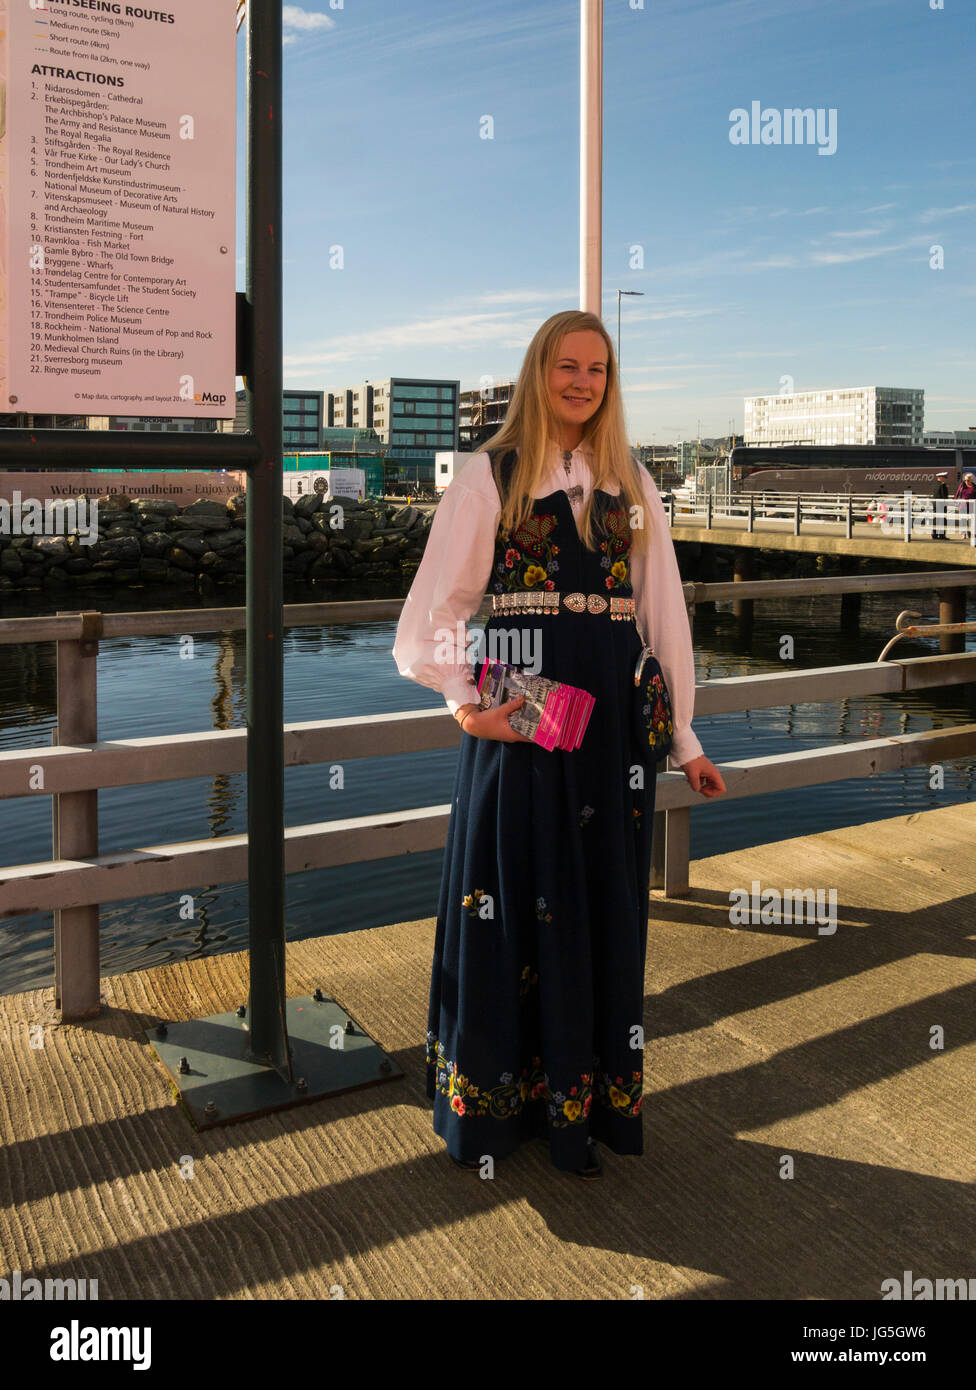 Young lady in Norwegian national dress welcoming visitors to Trondheim a city on Trondheim Fjord Norway Stock Photo